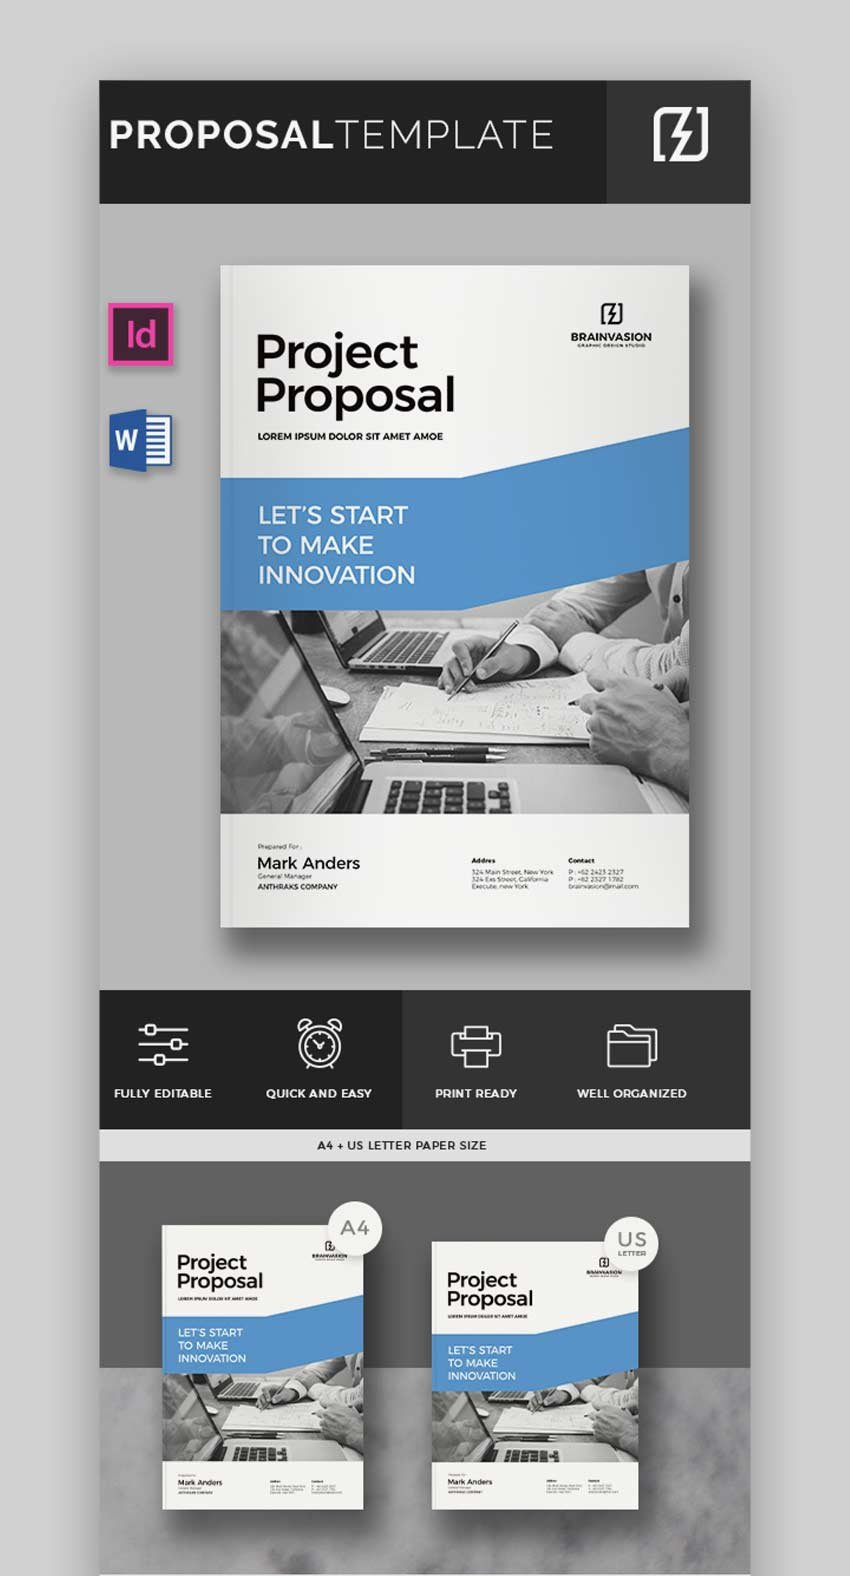 Proposal Template - InDesign and Microsoft Word